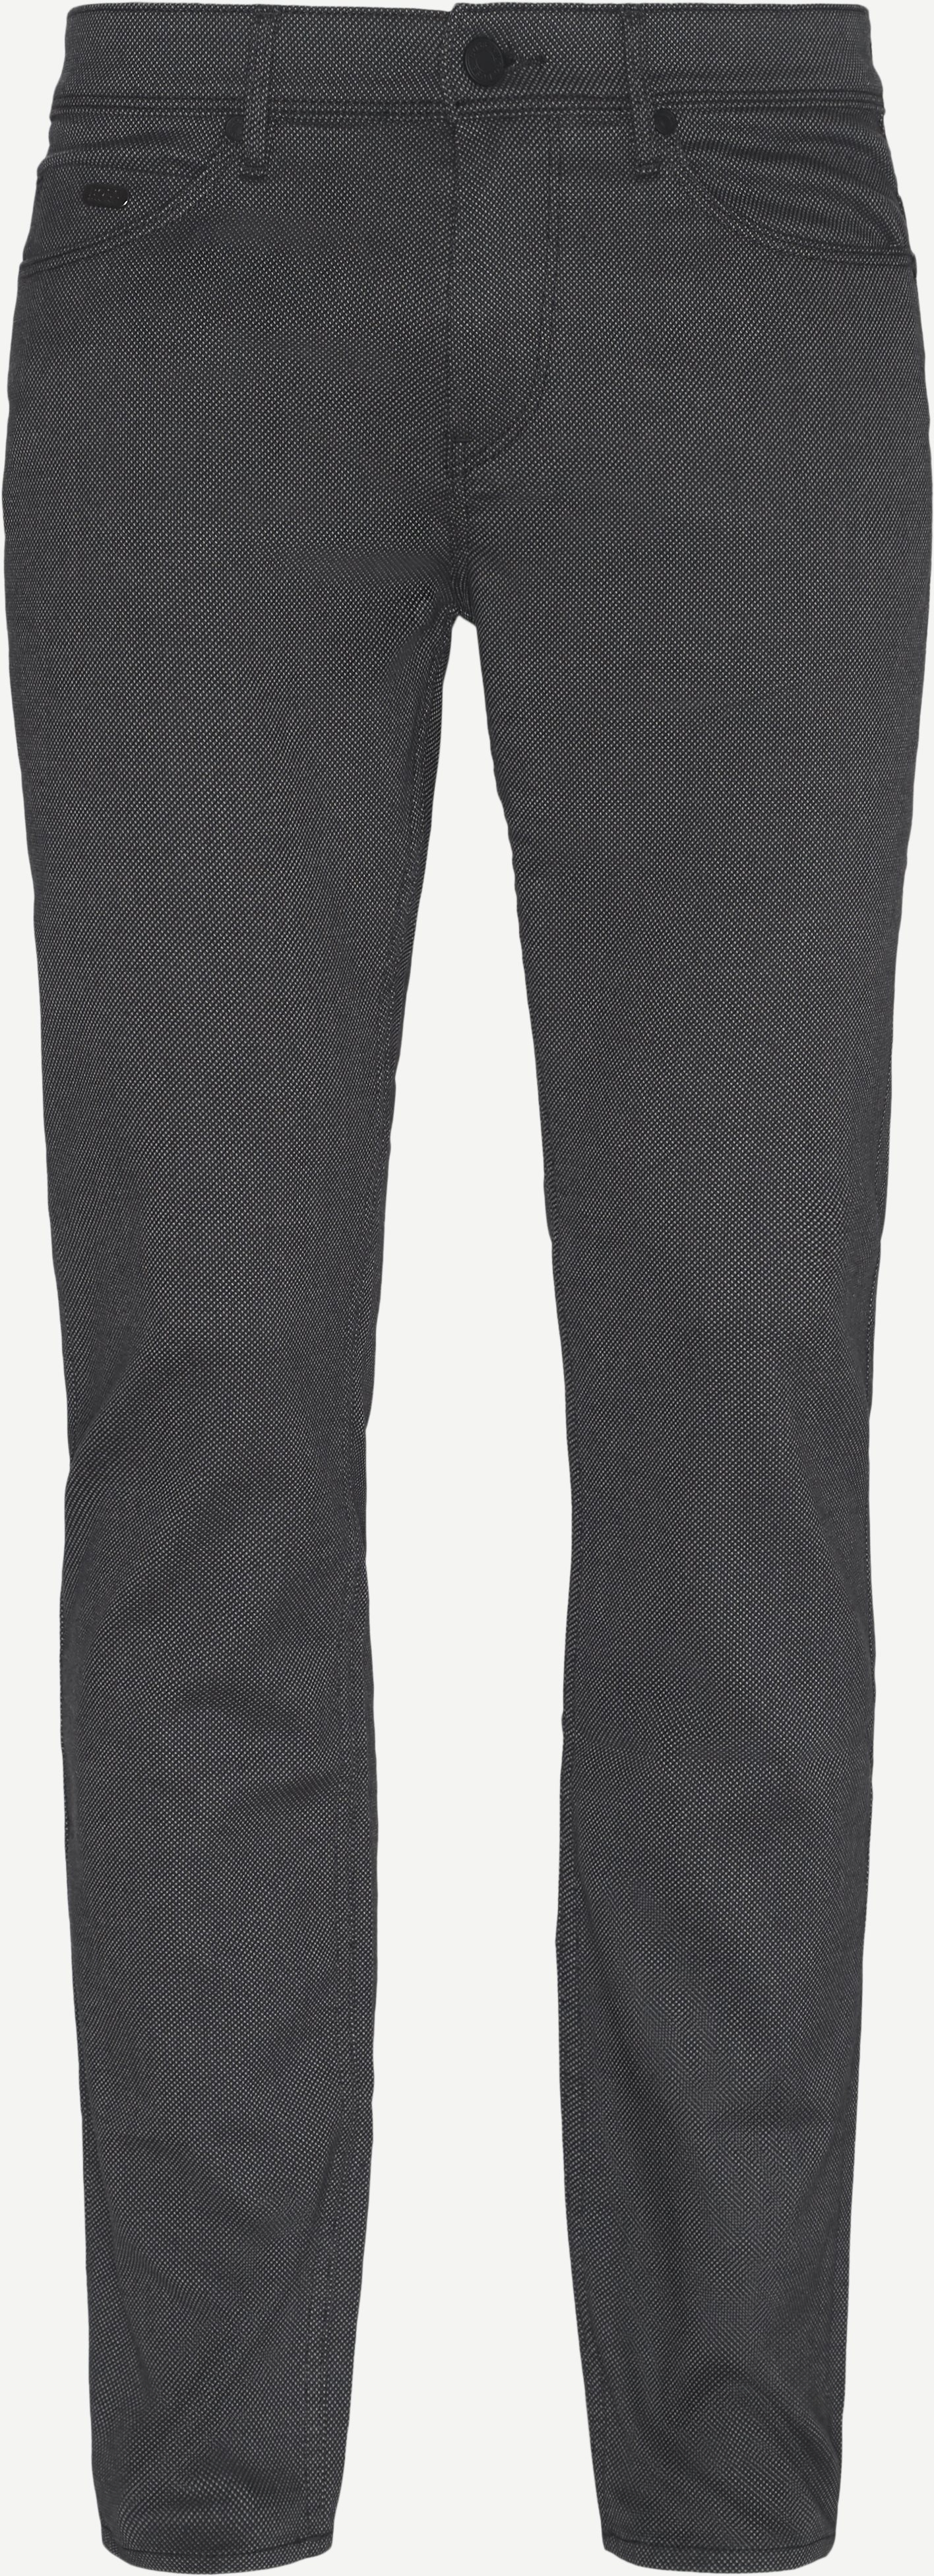 Jeans - Slim fit - Grey